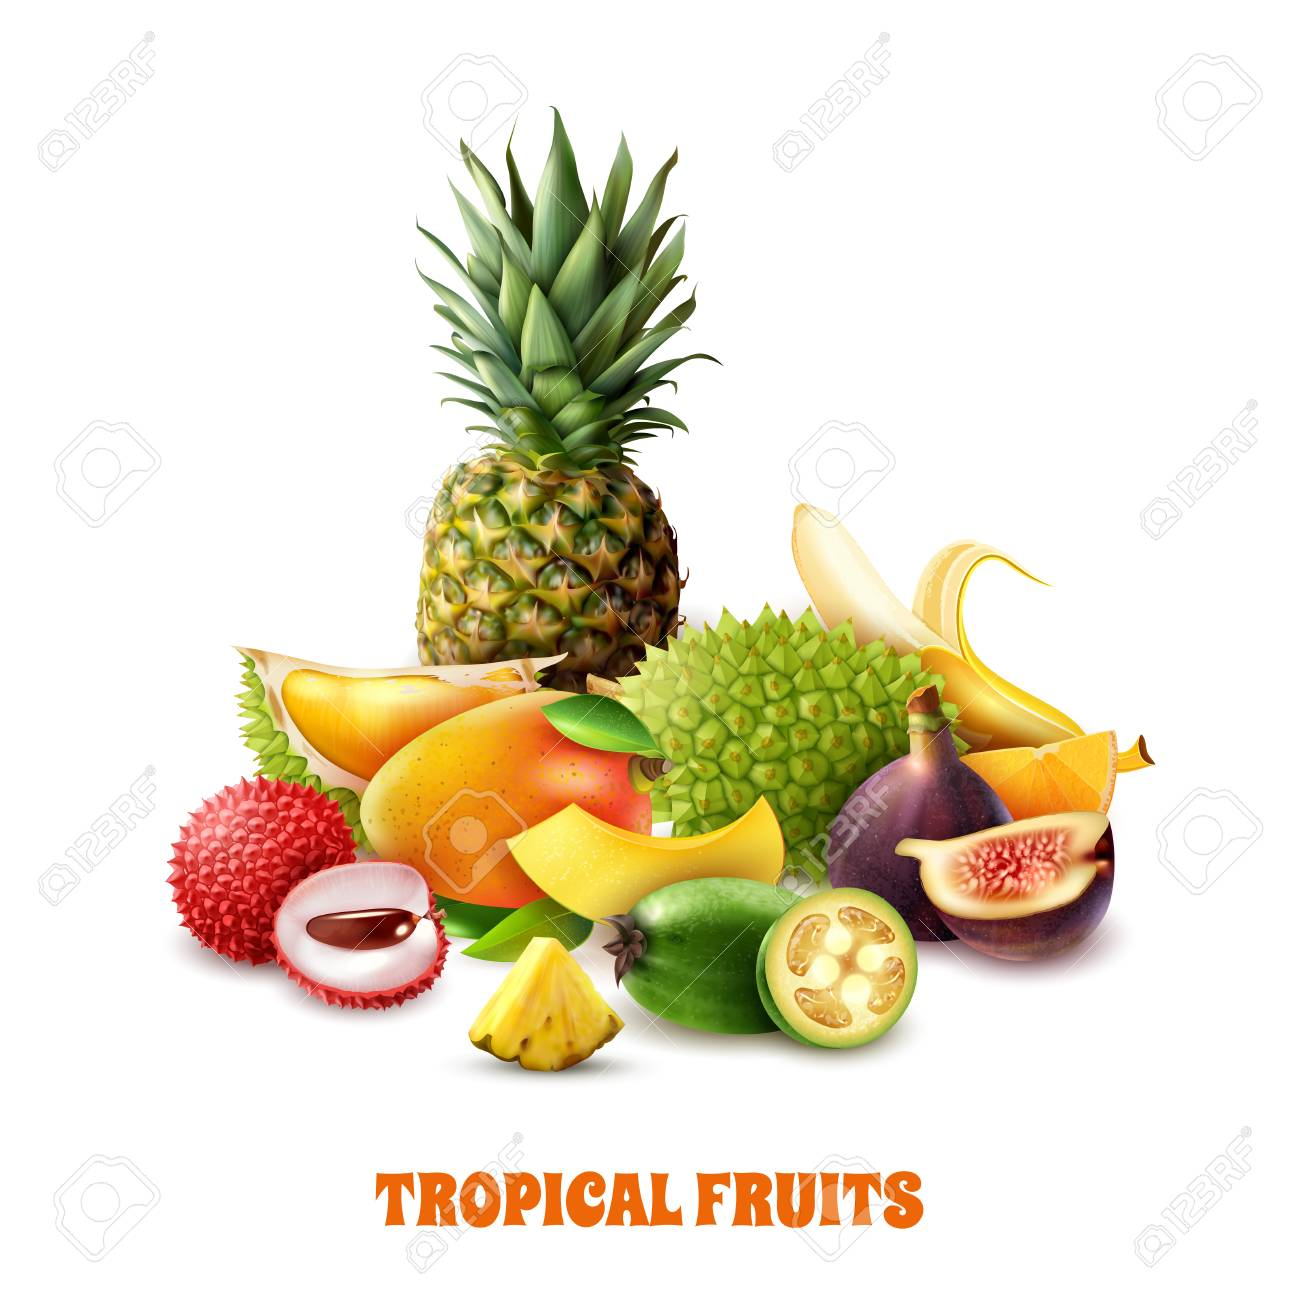 Composition from colorful exotic tropical fruits on white background 3d vector illustration - 100644310